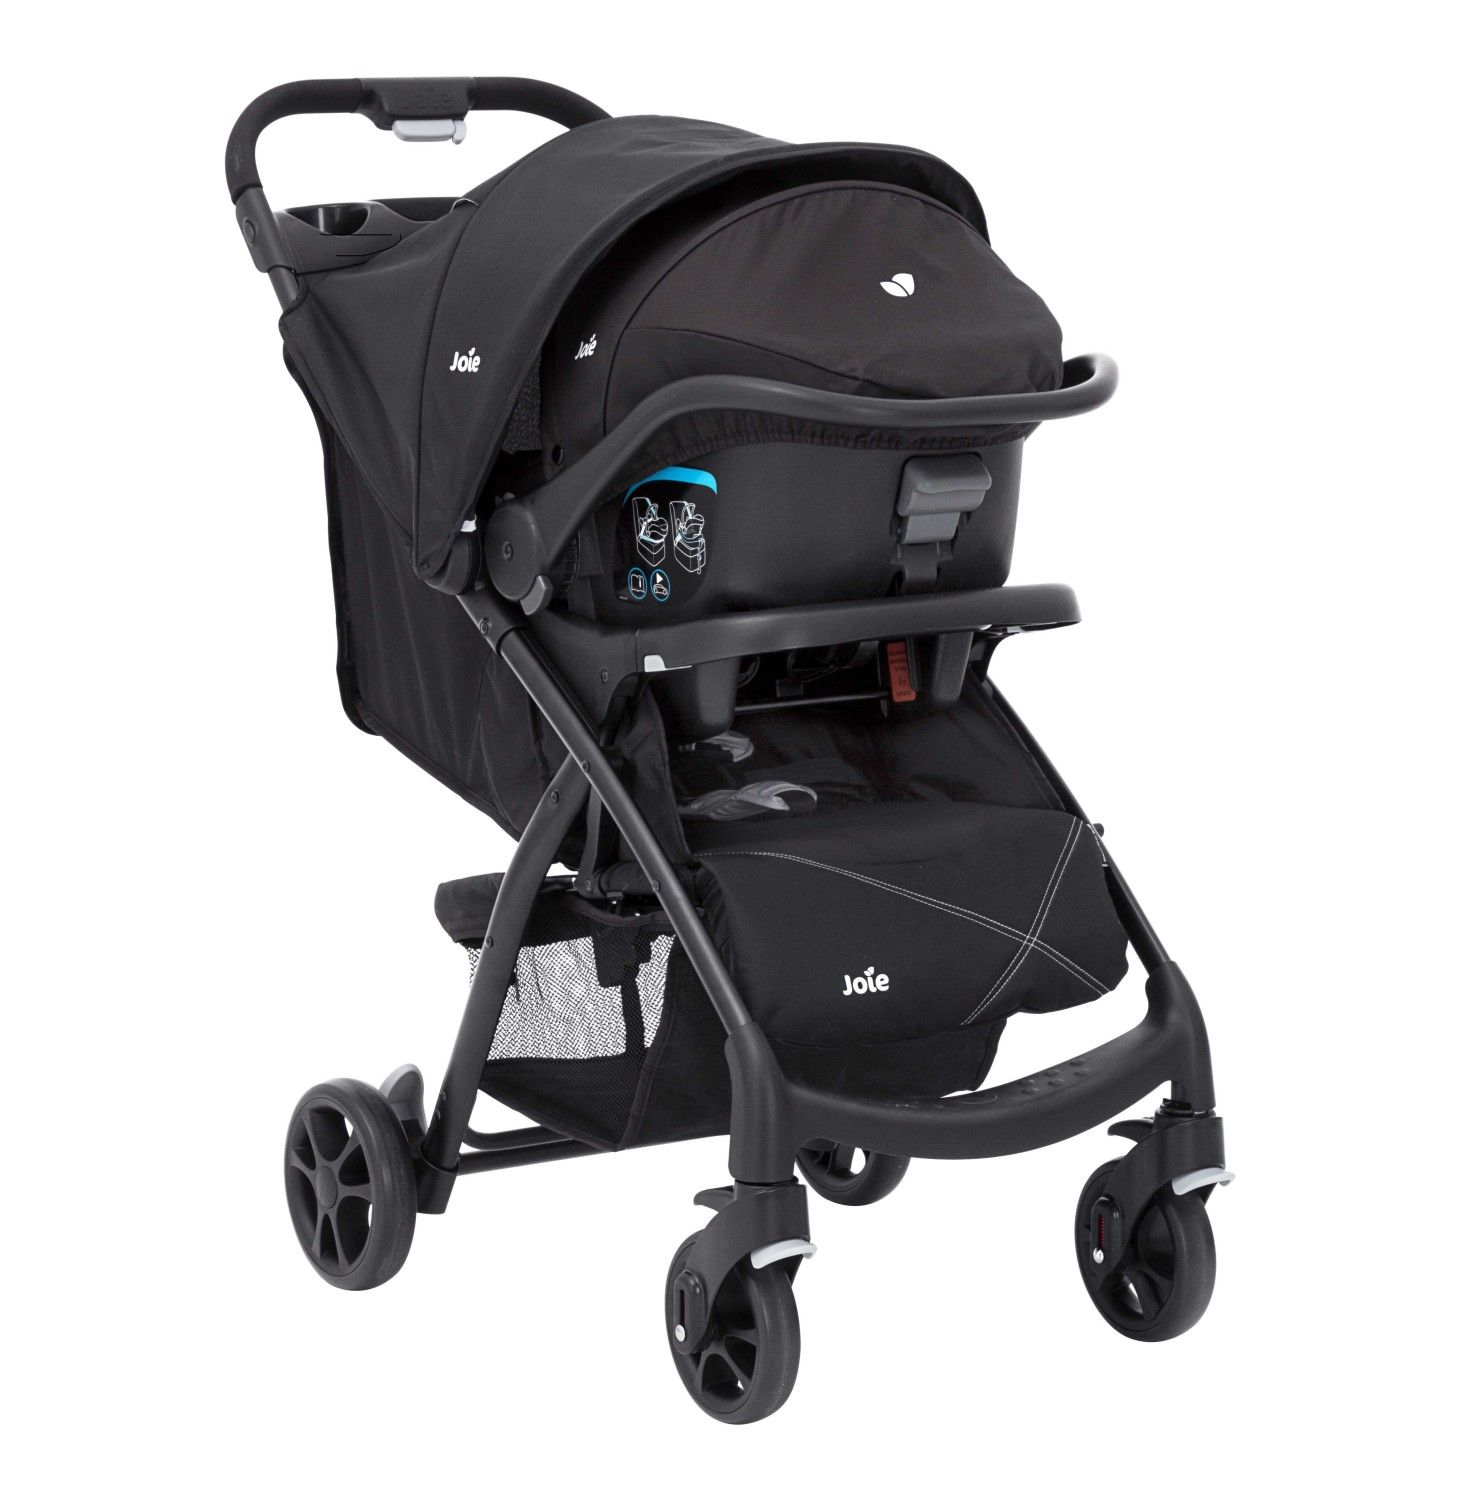 Joie Muze Travel System Travel systems for baby, Travel